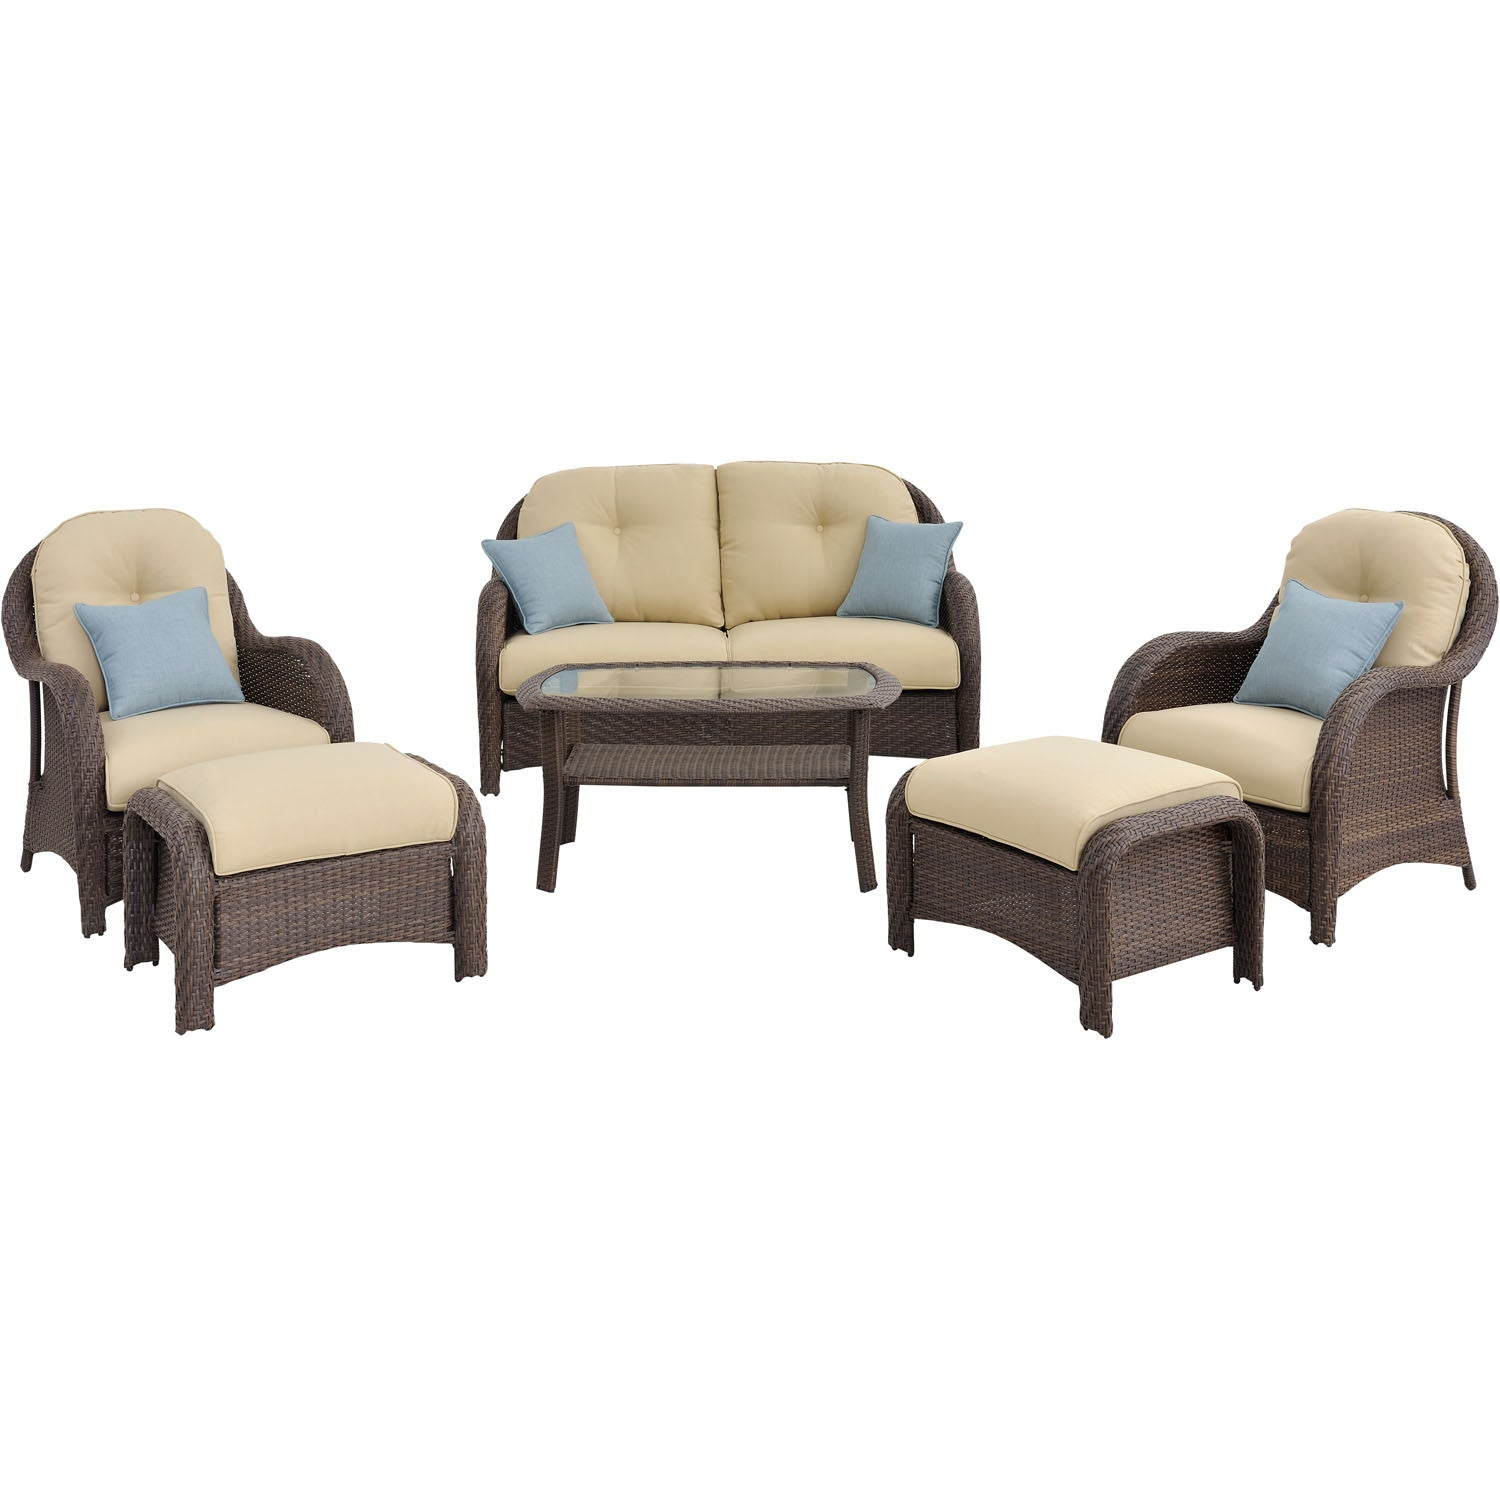 6pc Woven Deep Seating Set: Loveseat, 2 Chairs, 2 Ottomans, 1 Coffee T U2013  BBQDeal.com